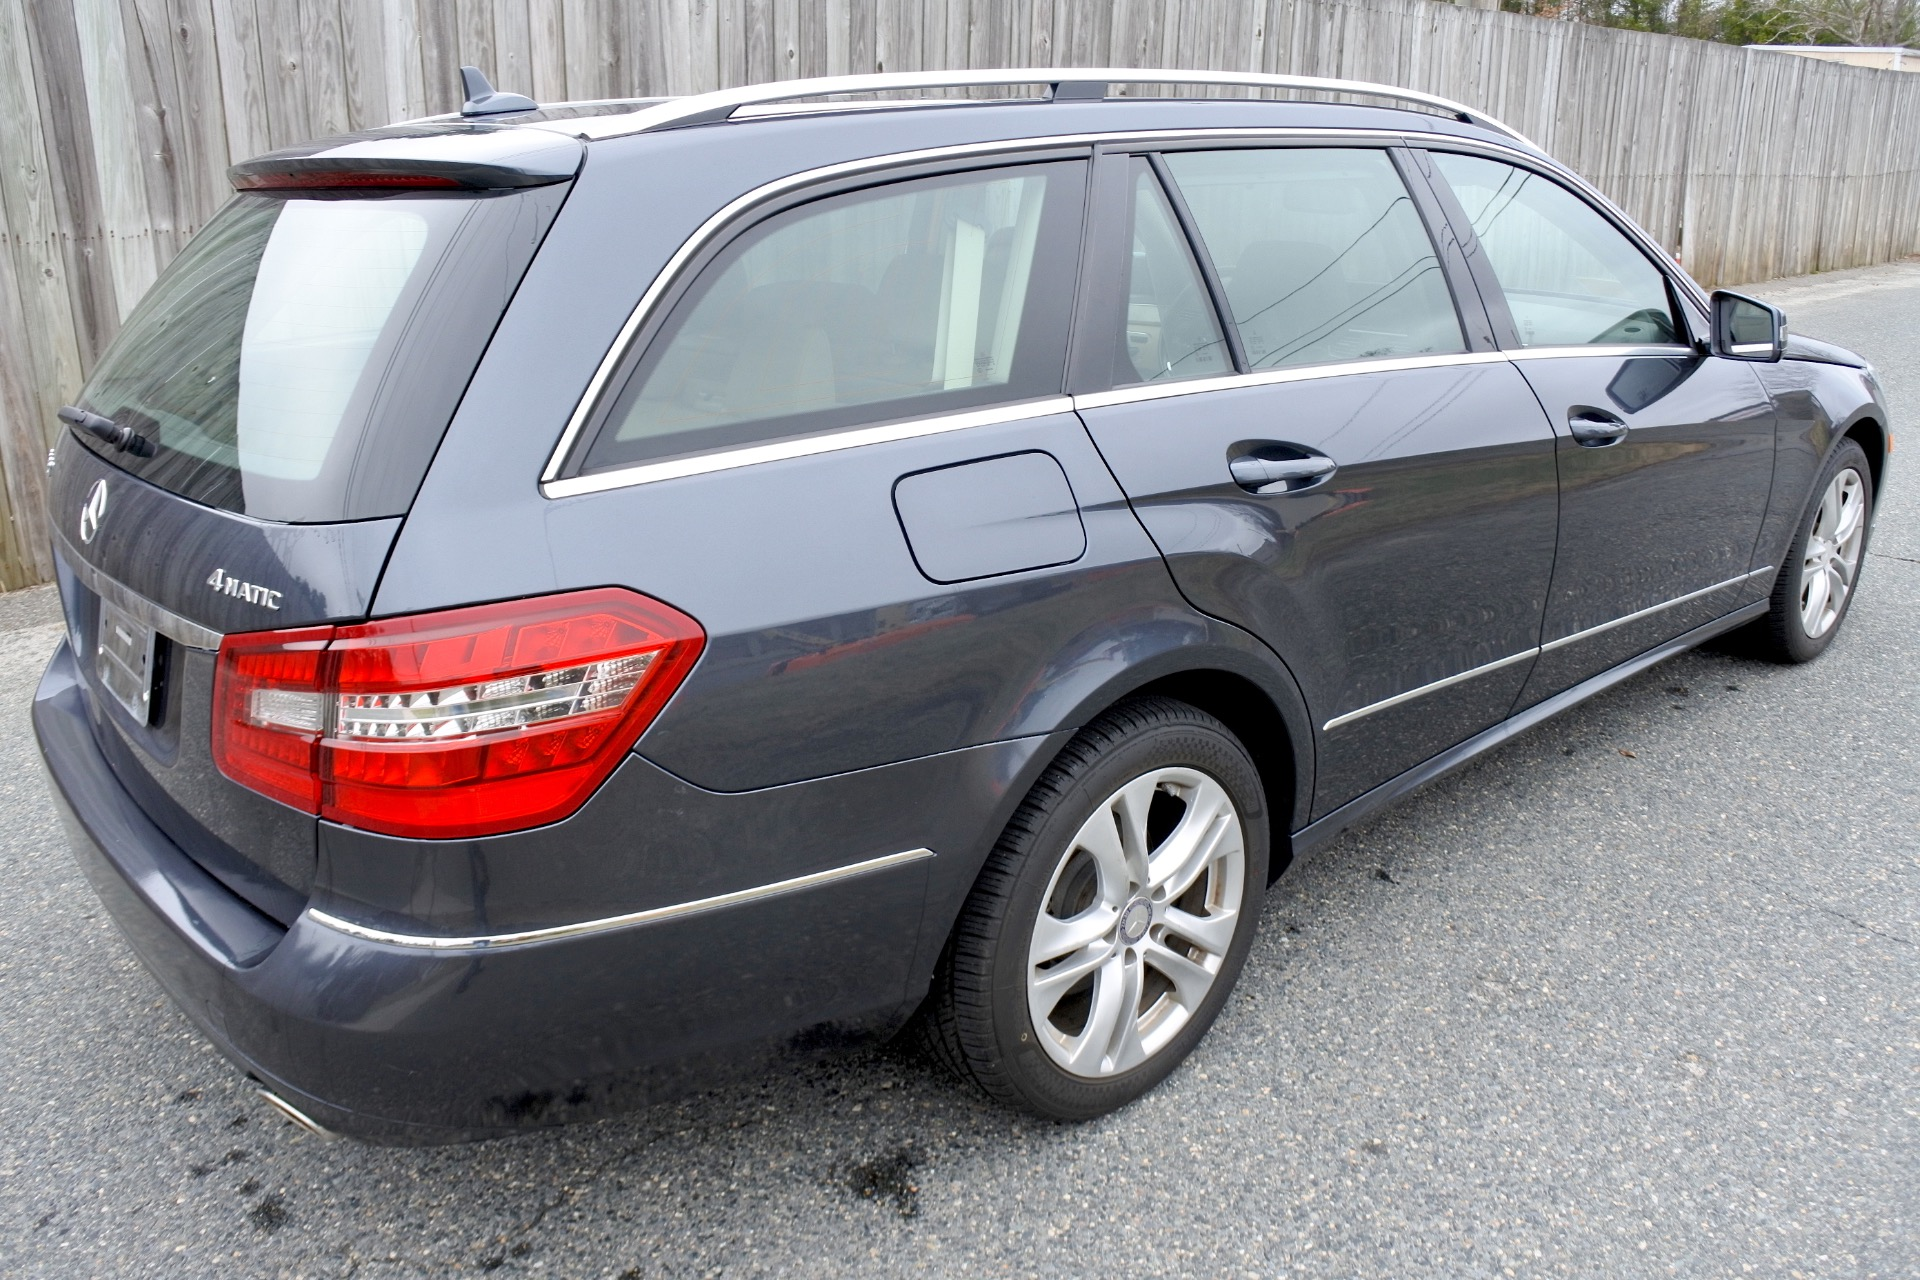 Used 2011 Mercedes-Benz E-Class 4dr Wgn E350 Luxury 4MATIC Used 2011 Mercedes-Benz E-Class 4dr Wgn E350 Luxury 4MATIC for sale  at Metro West Motorcars LLC in Shrewsbury MA 5